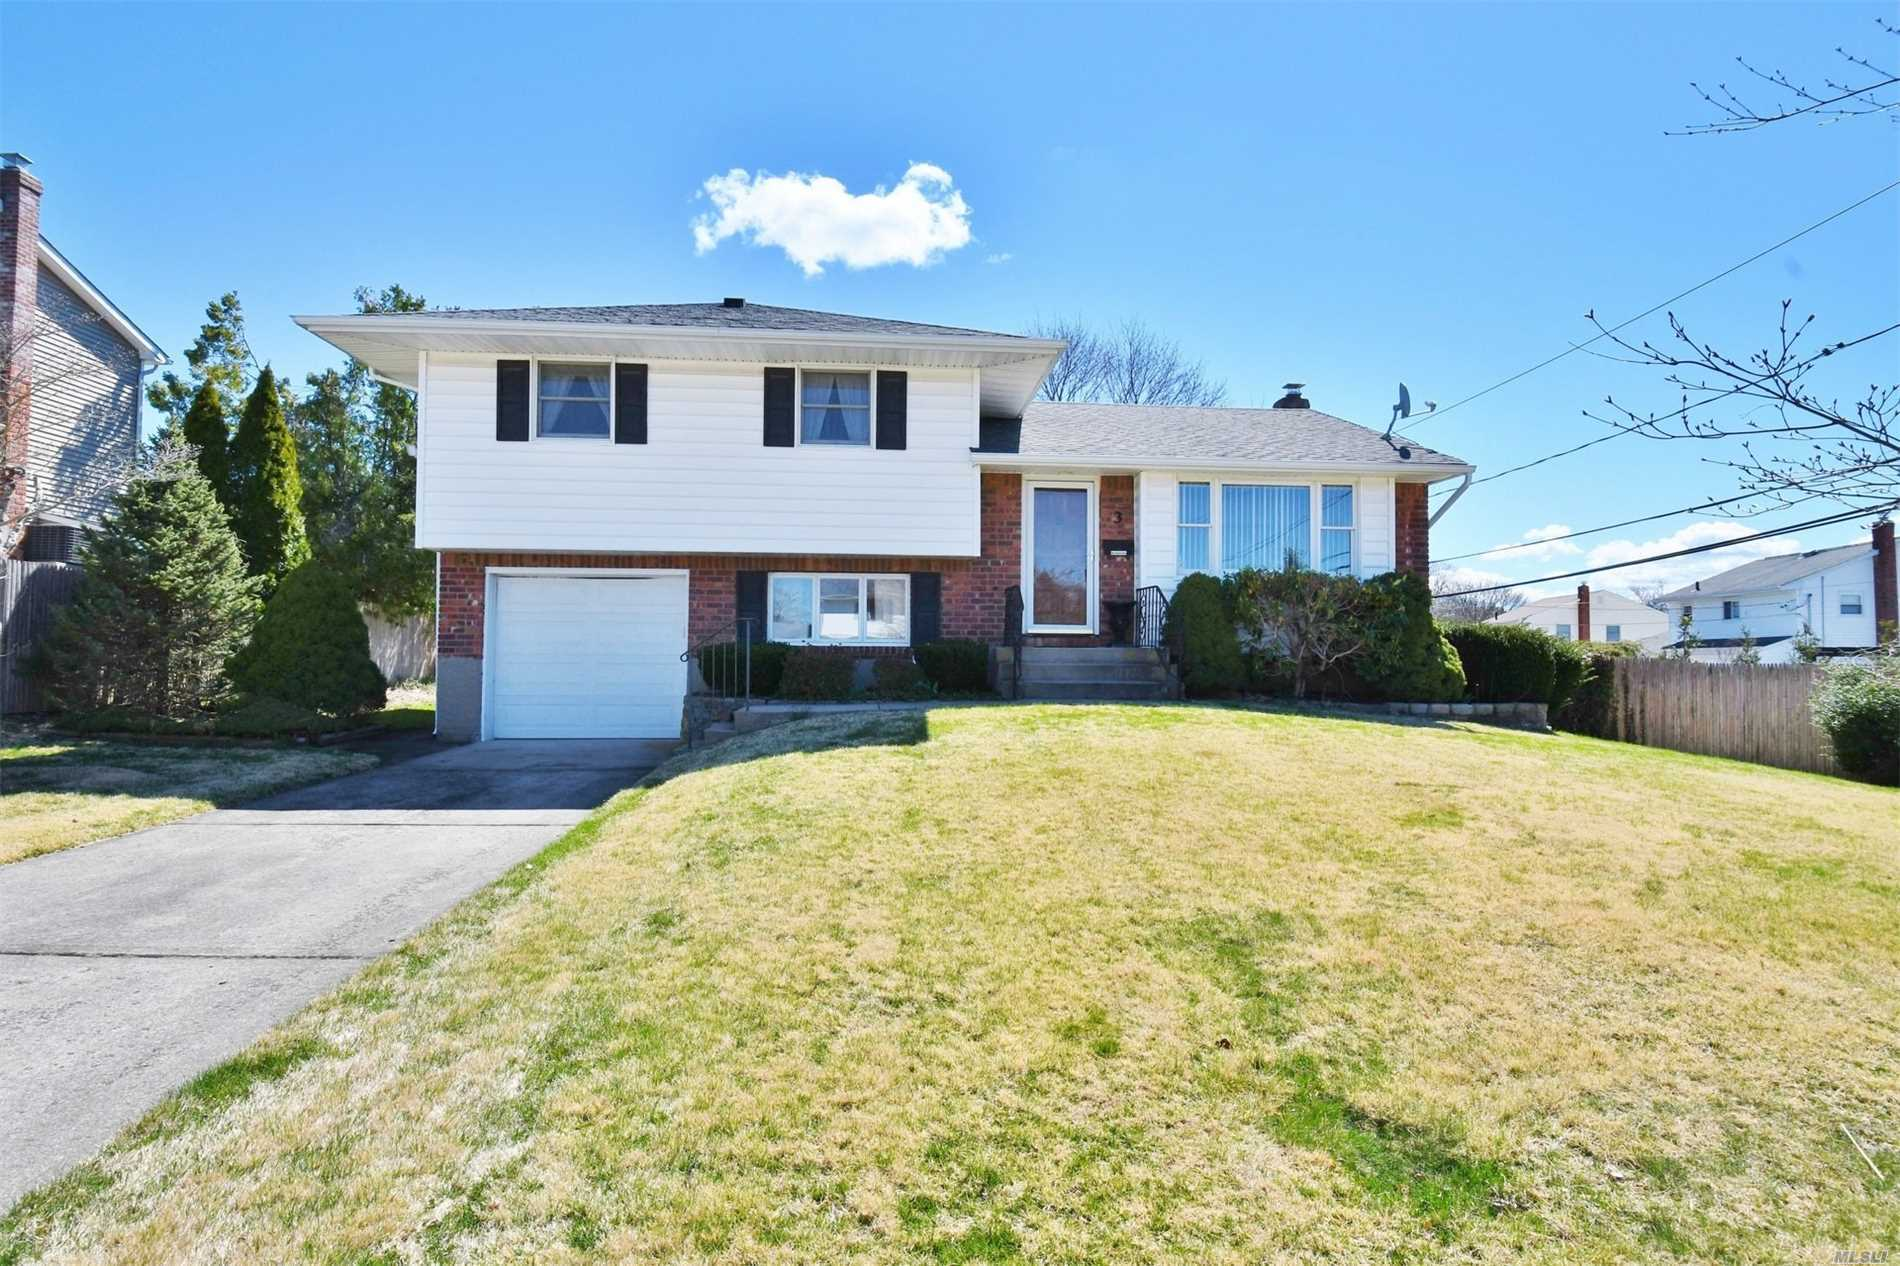 Photo of home for sale at 3 Gaymor Ln, Commack NY